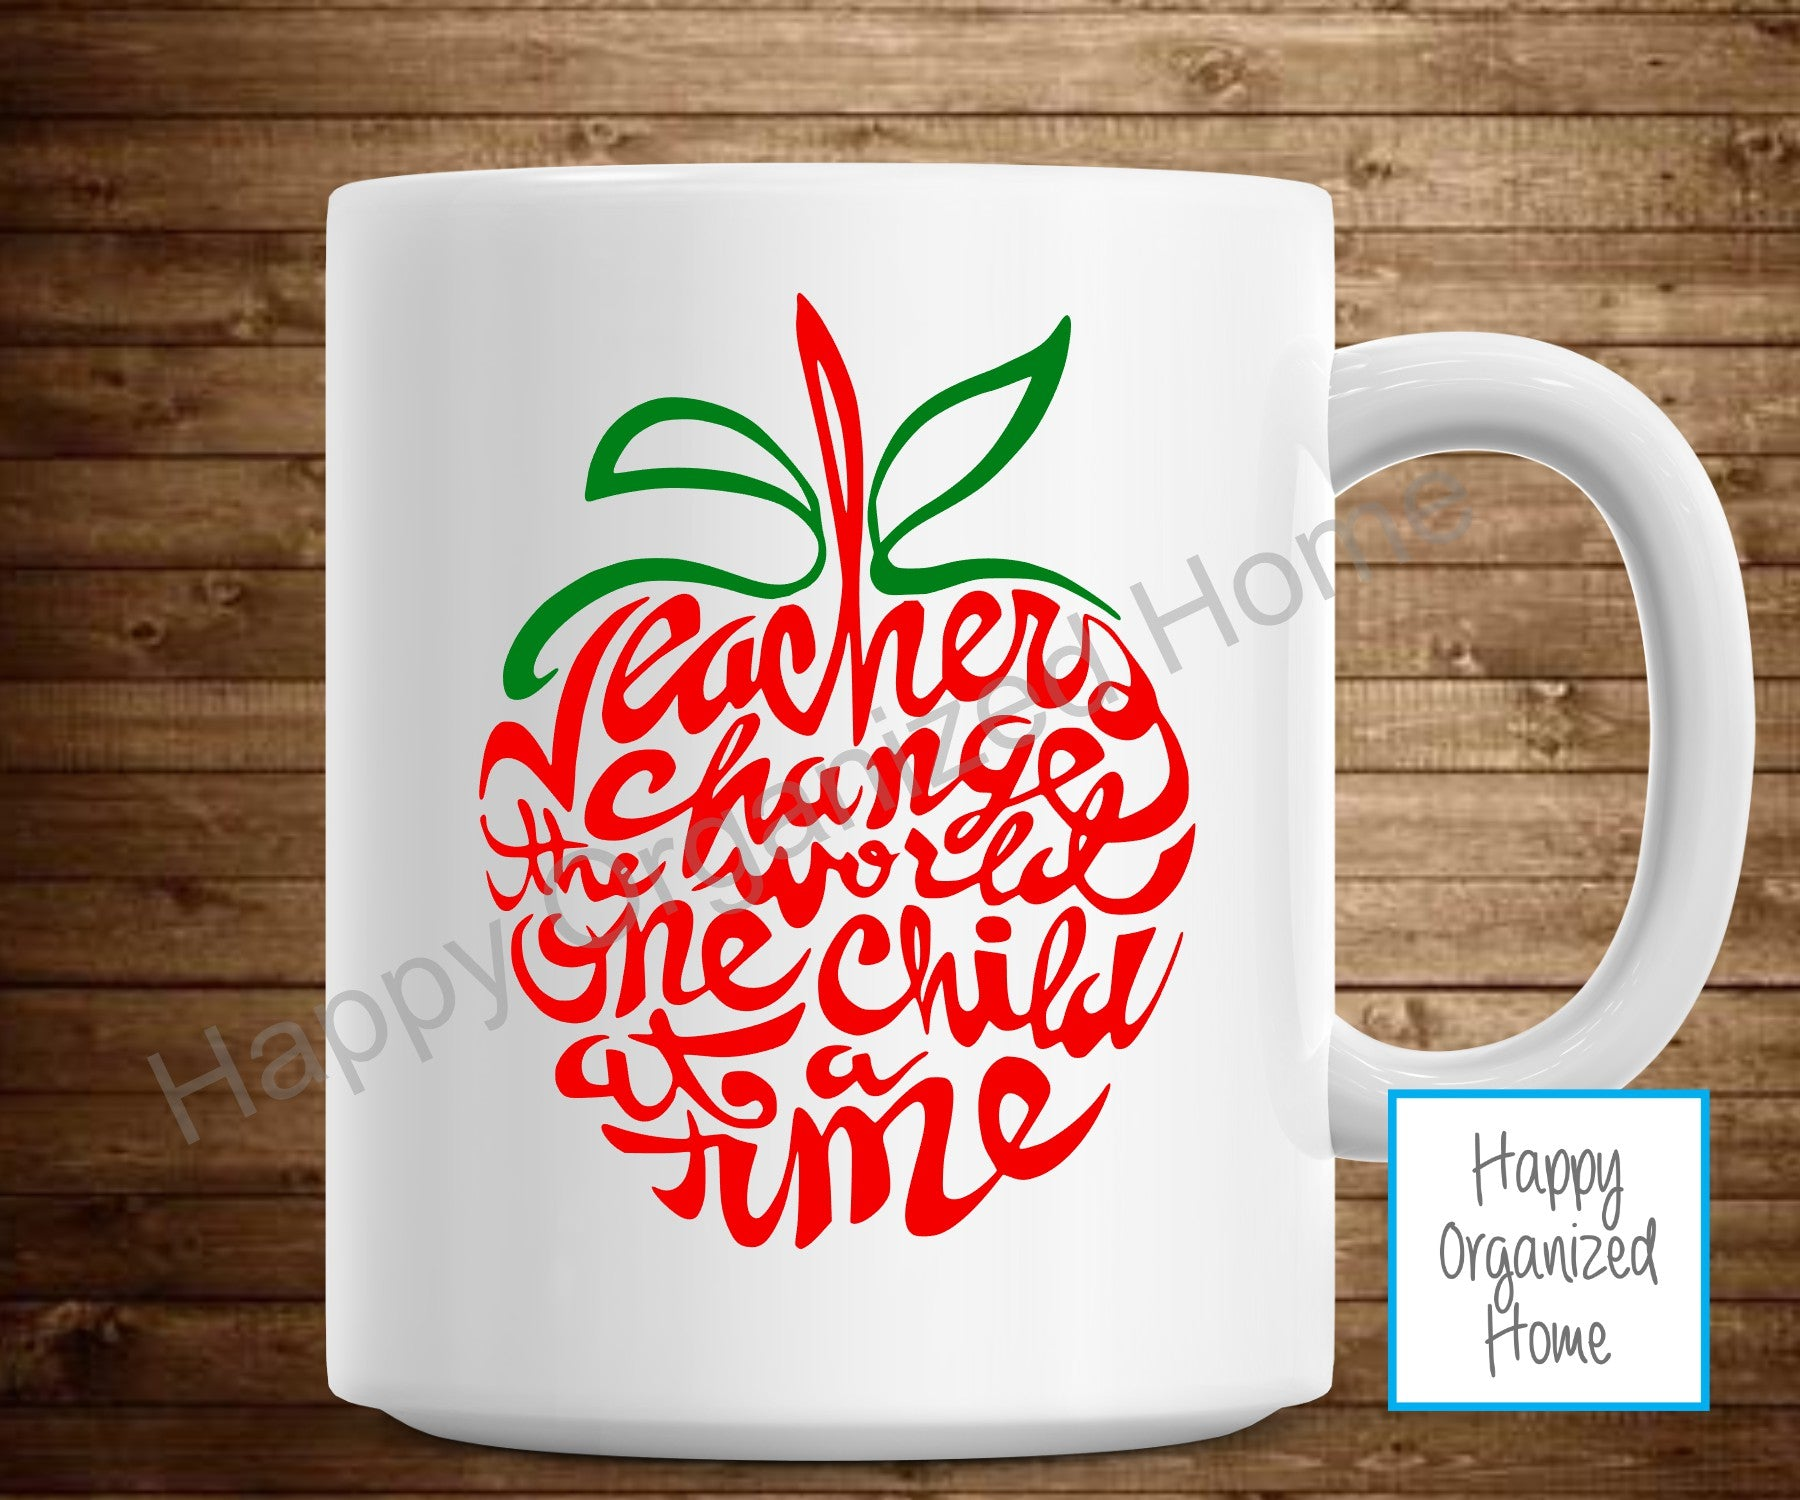 Teachers Change the world. One child at a time Mug